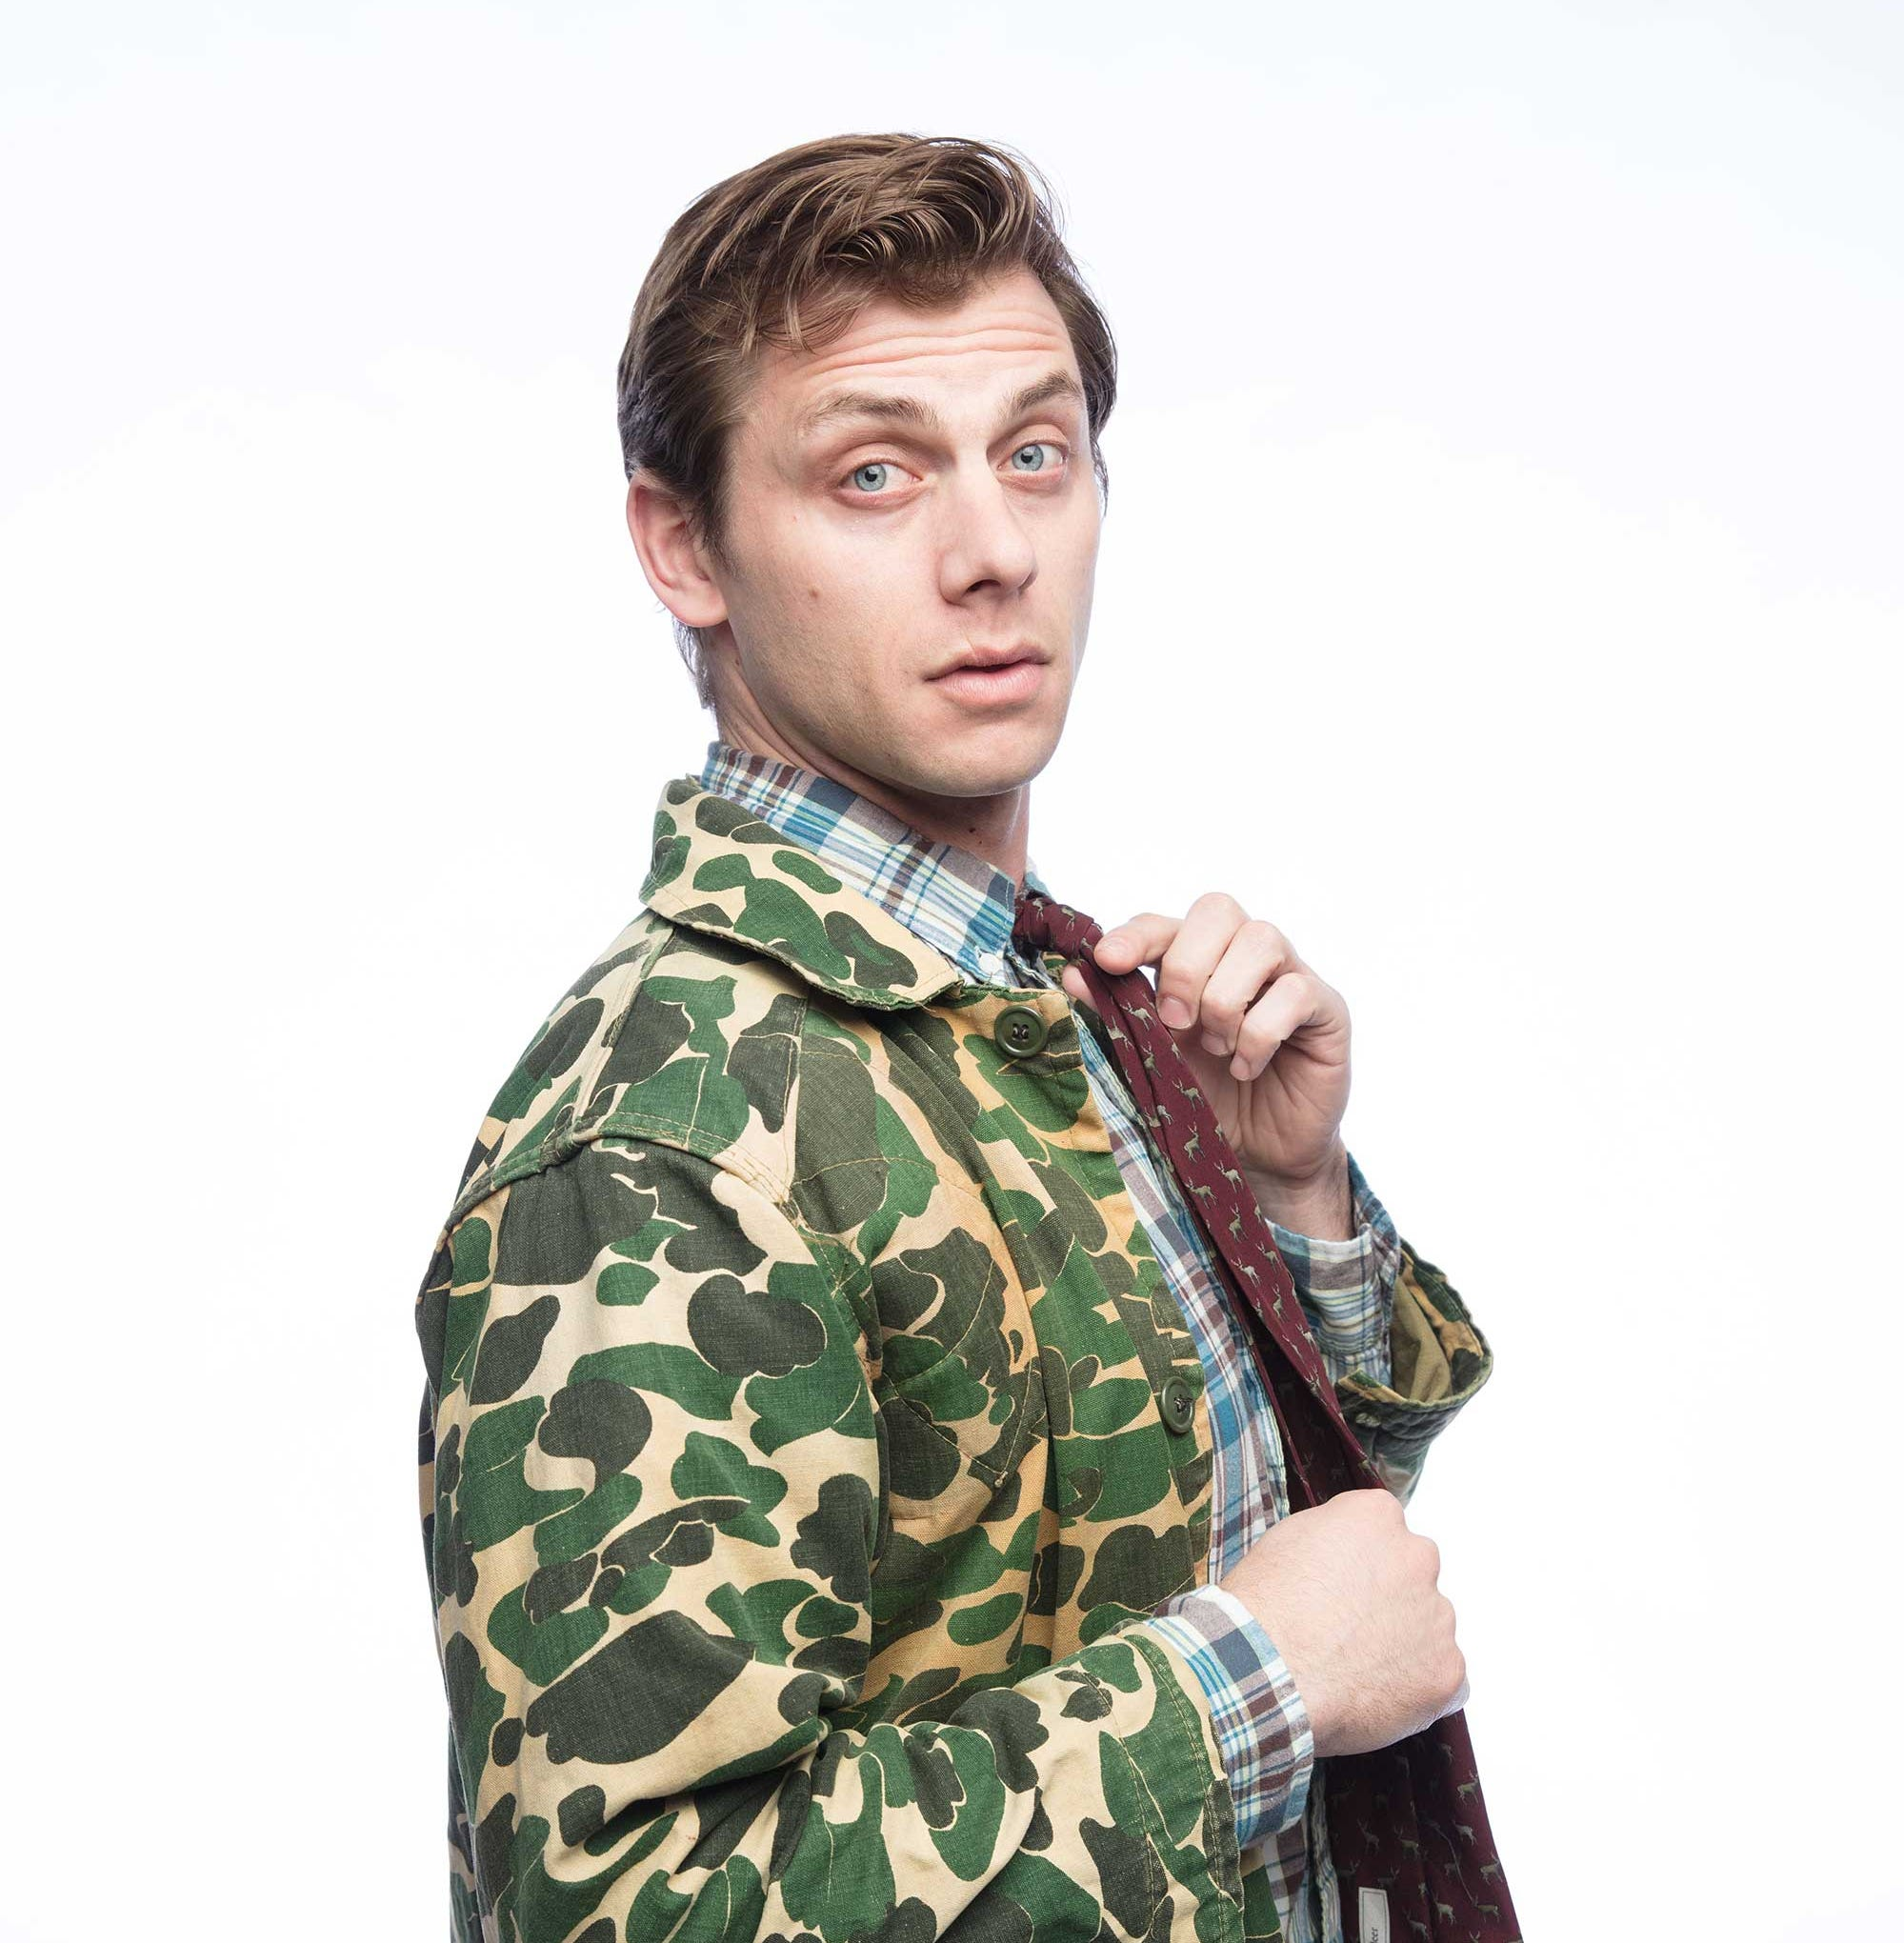 'Manitowoc Minute's' Charlie Berens will help keep CP Telethon moving as guest host